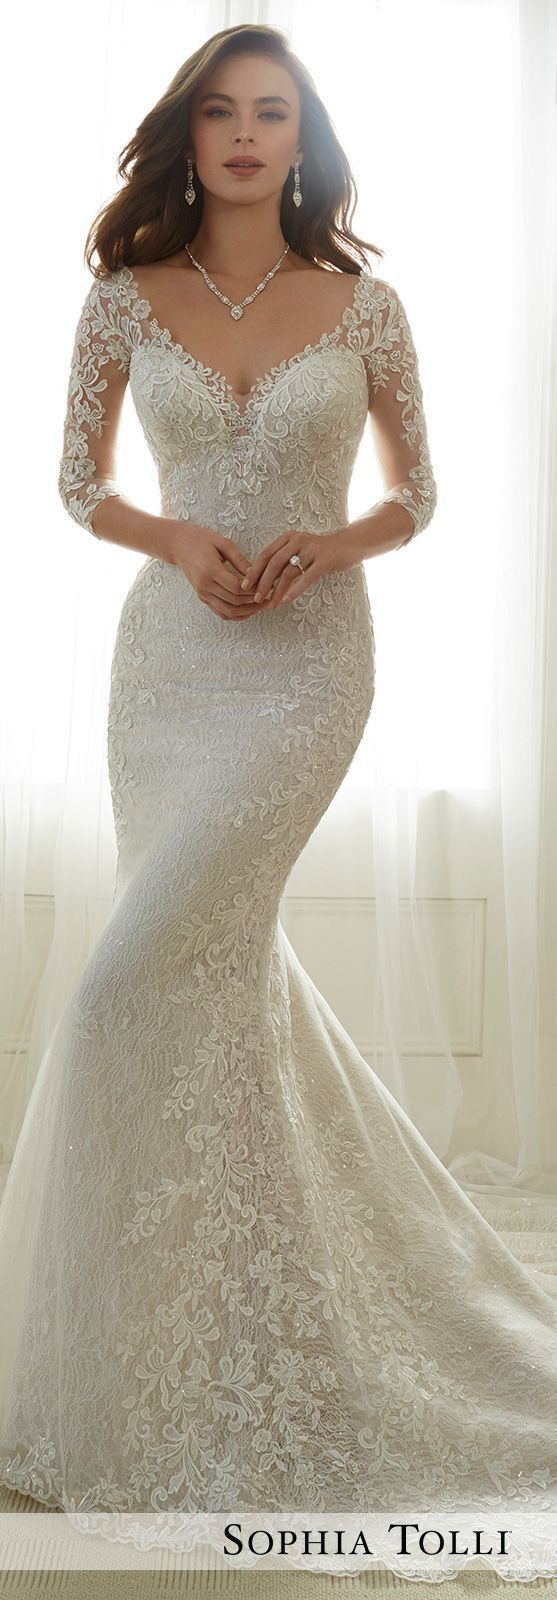 Wedding Dress by Sophia Tolli Spring 2017 Bridal Collection | Style No. » Y11702 Gabrielle